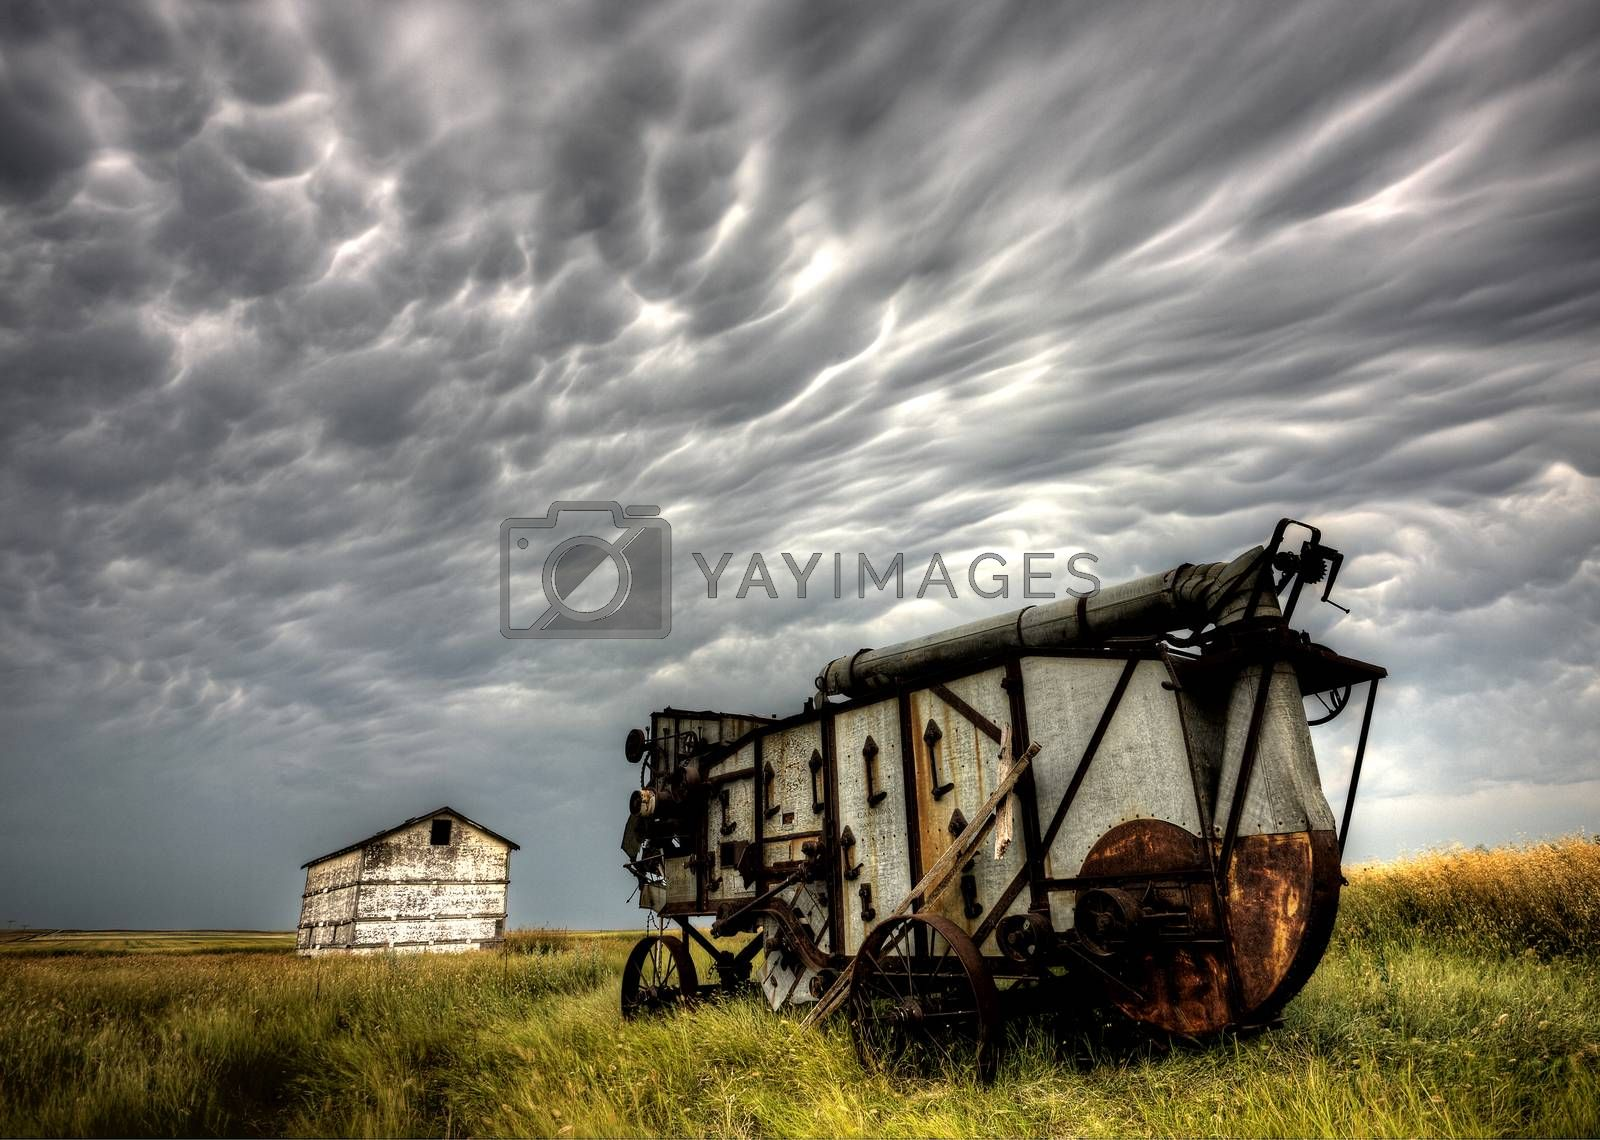 Royalty free image of Storm Clouds Saskatchewan by pictureguy